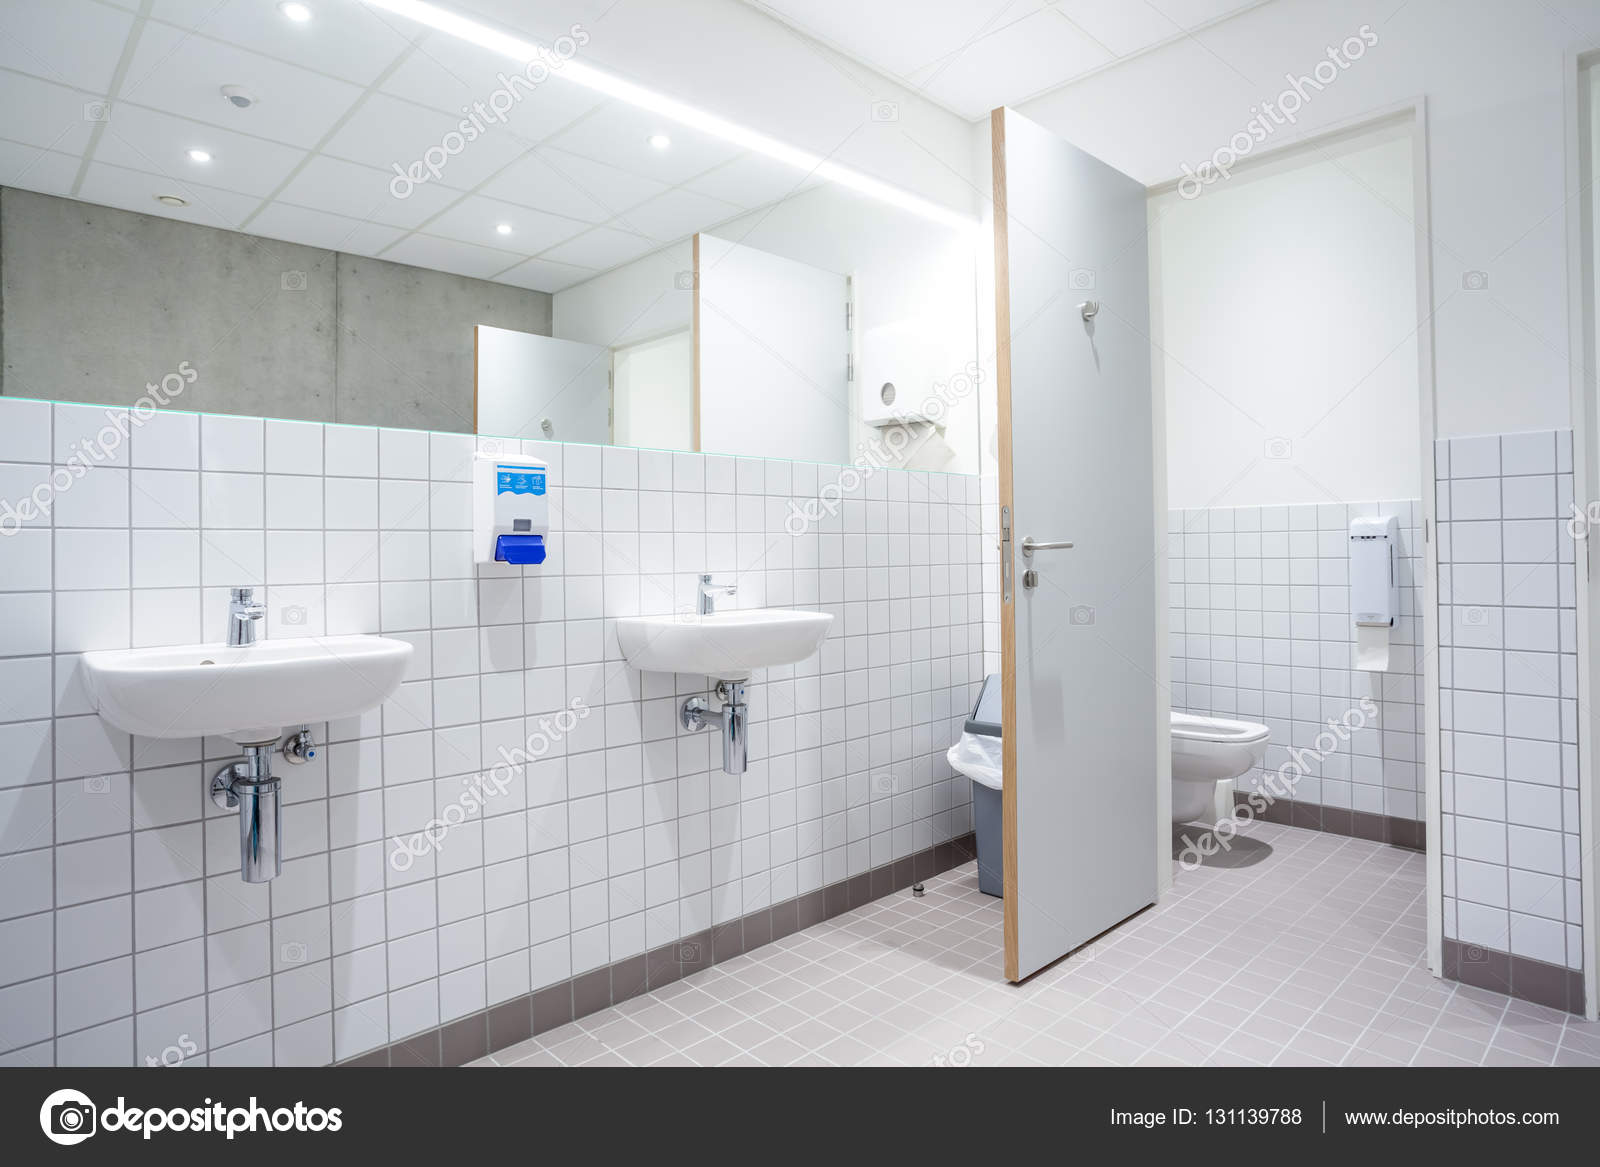 doors from toilets and sinks — Stock Photo © DenBoma #131139788